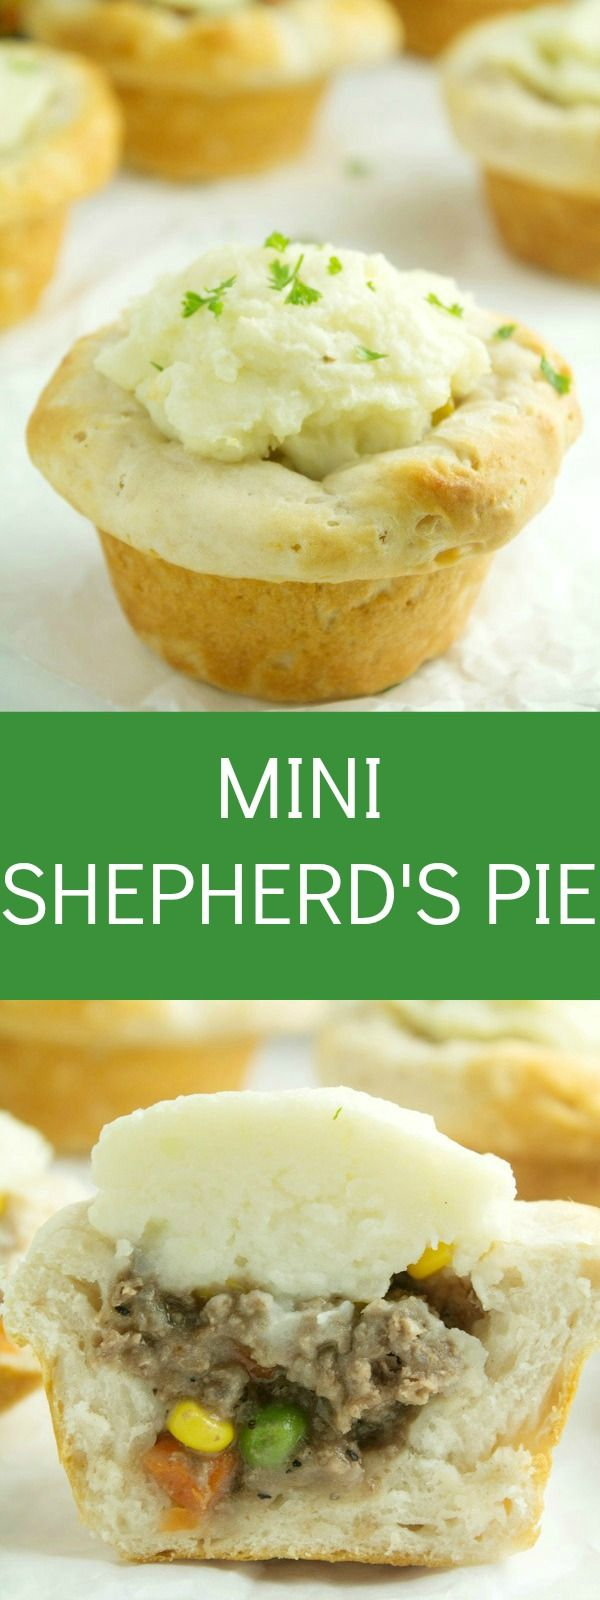 delicious mini shepherd's pie recipe that uses biscuits, filled ...